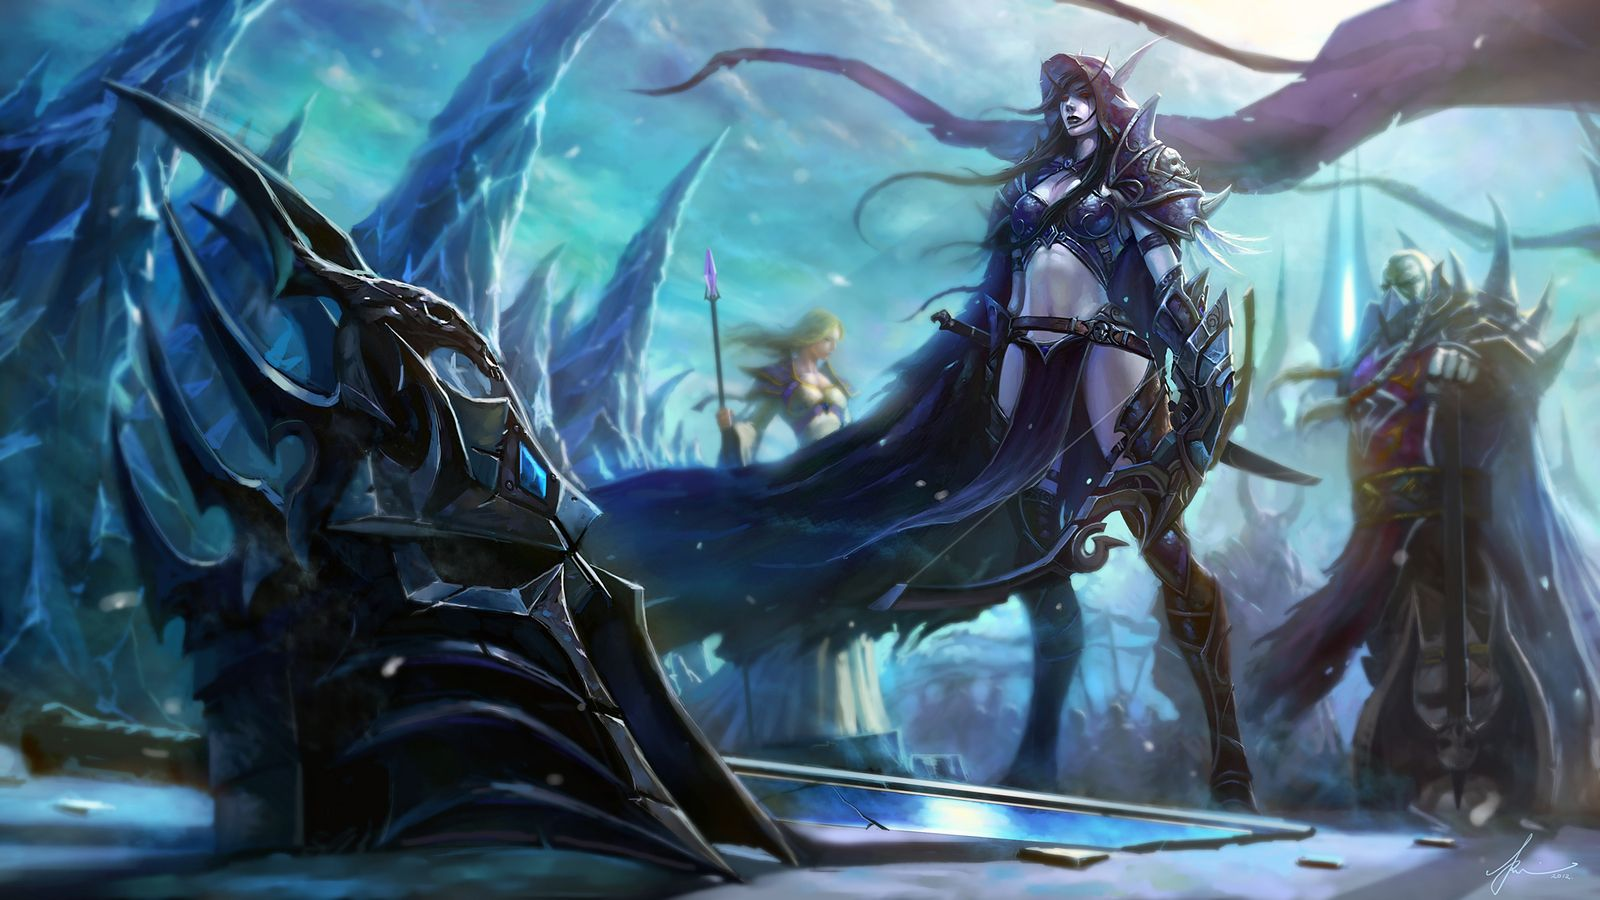 Pin By Sibeal Felix On Wow In 2019 Warcraft Art World Of